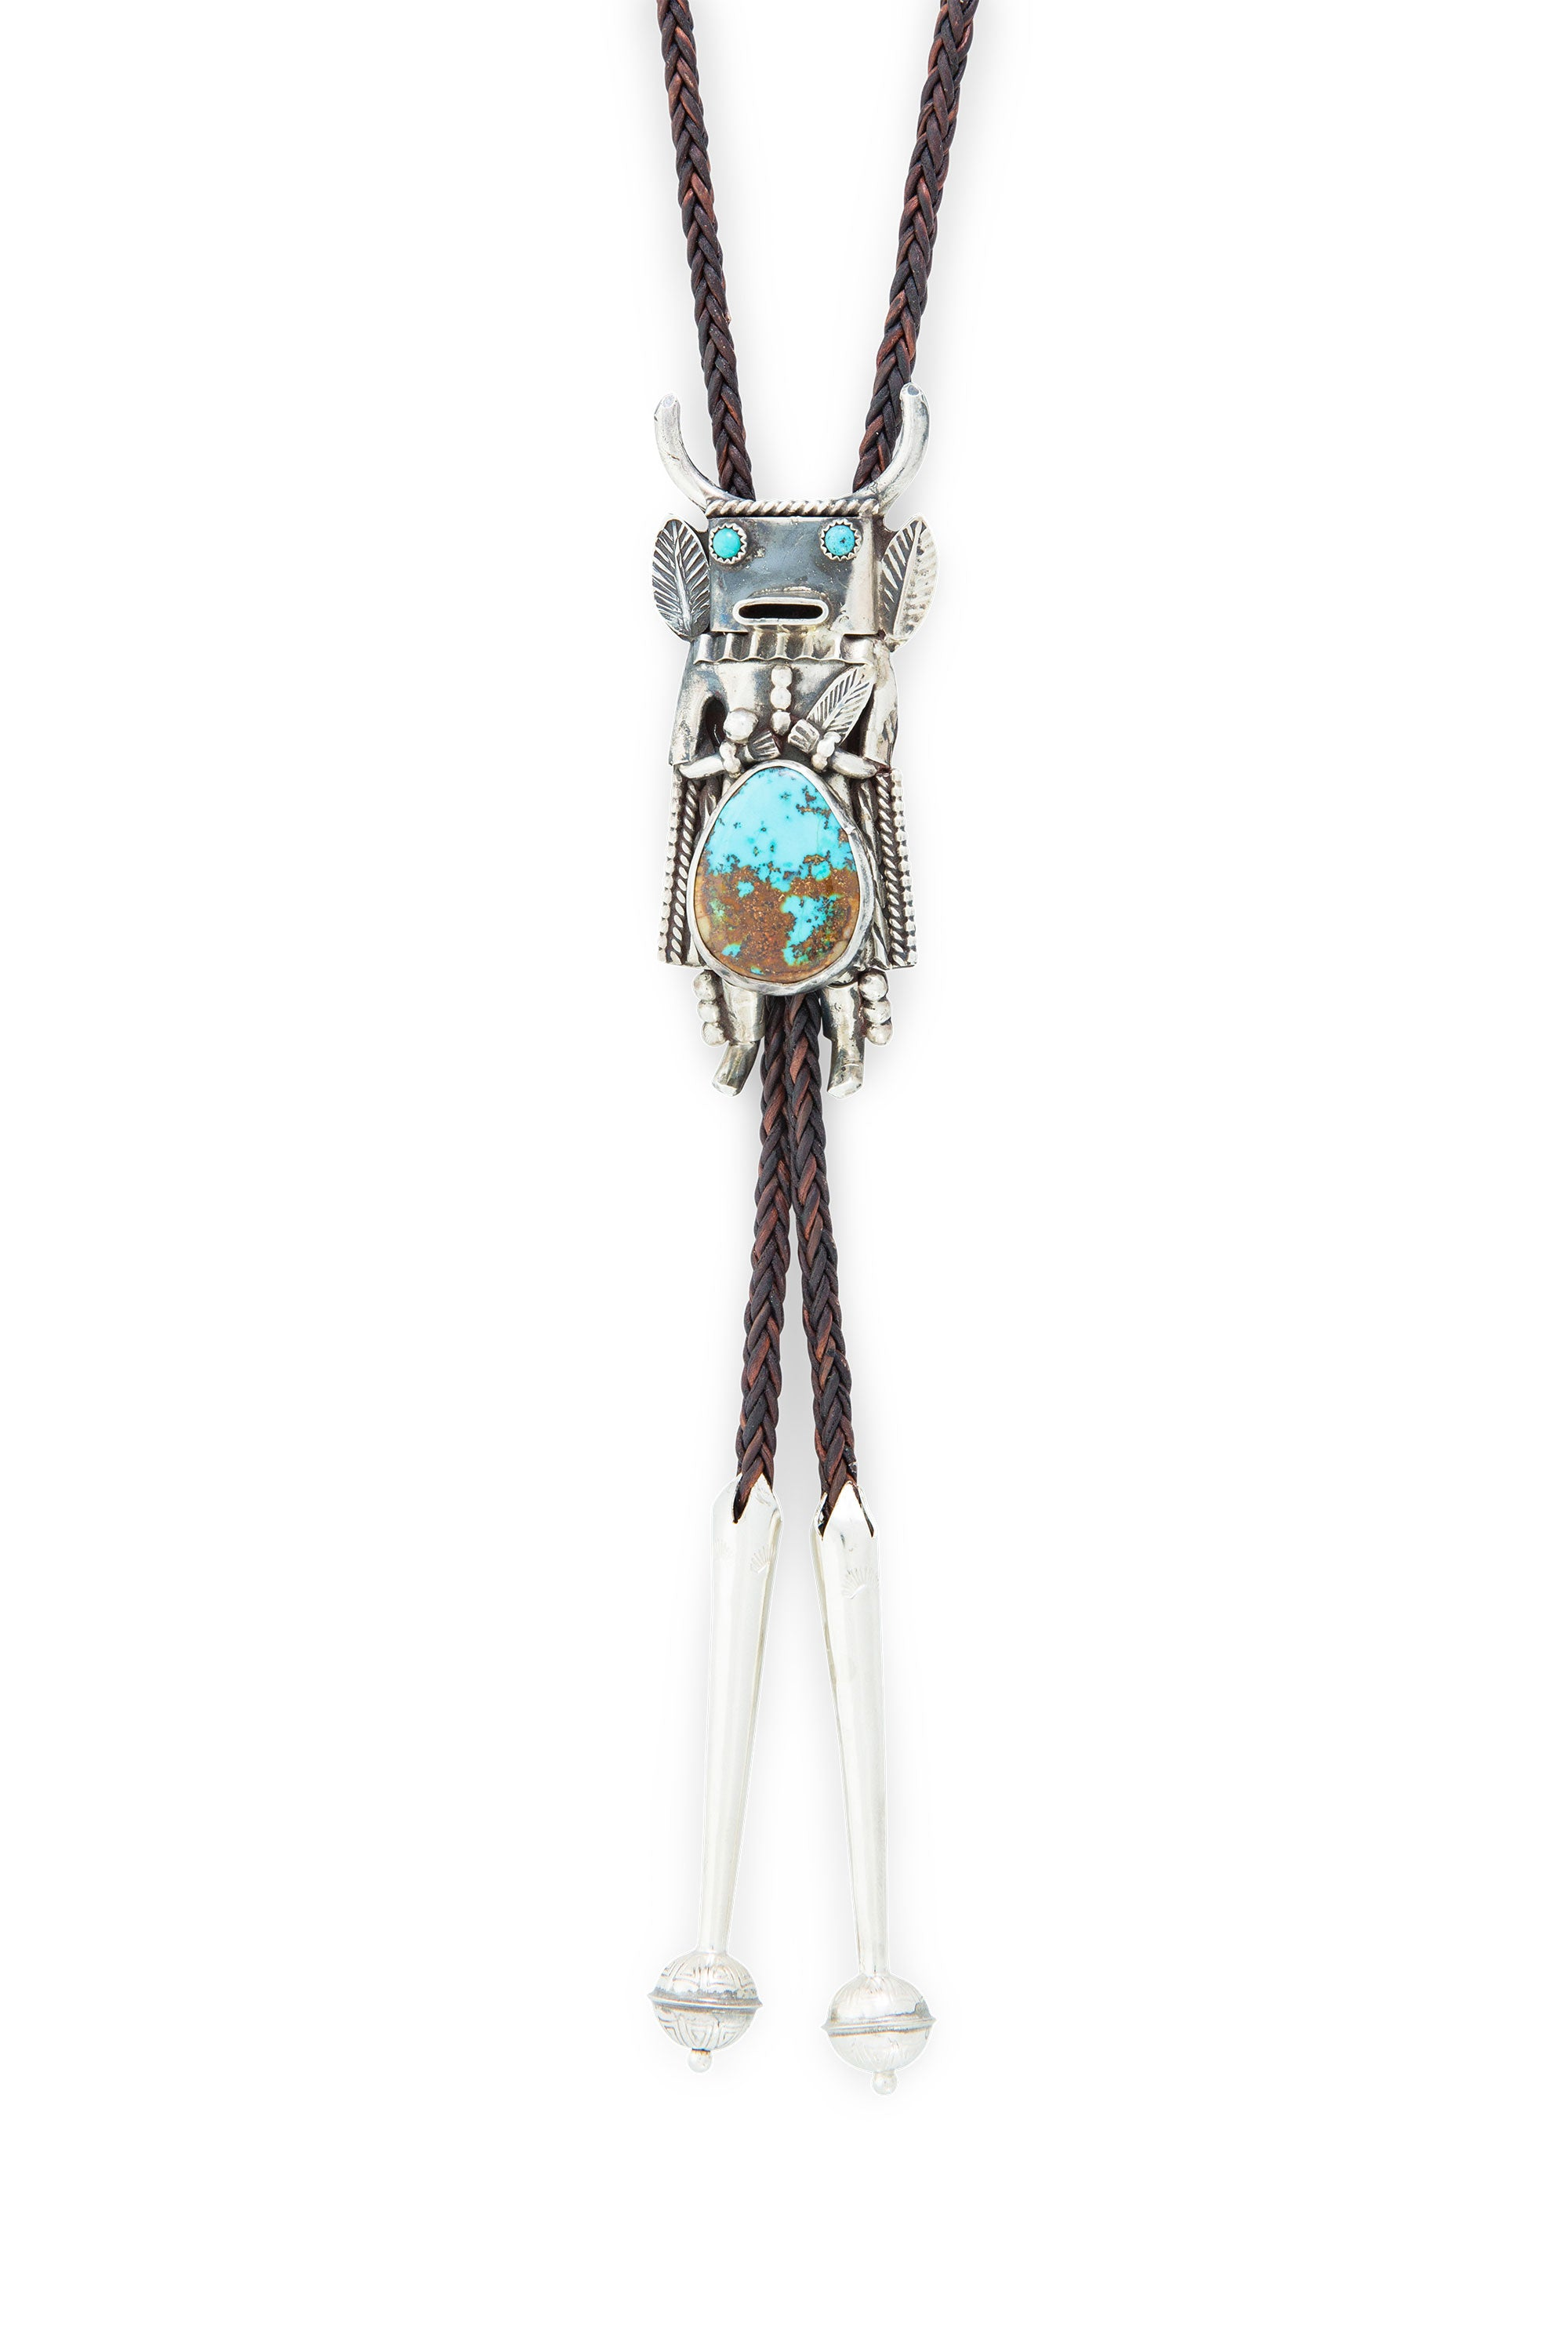 Bolo, Turquoise & Sterling Silver, Kachina, Vintage, 970